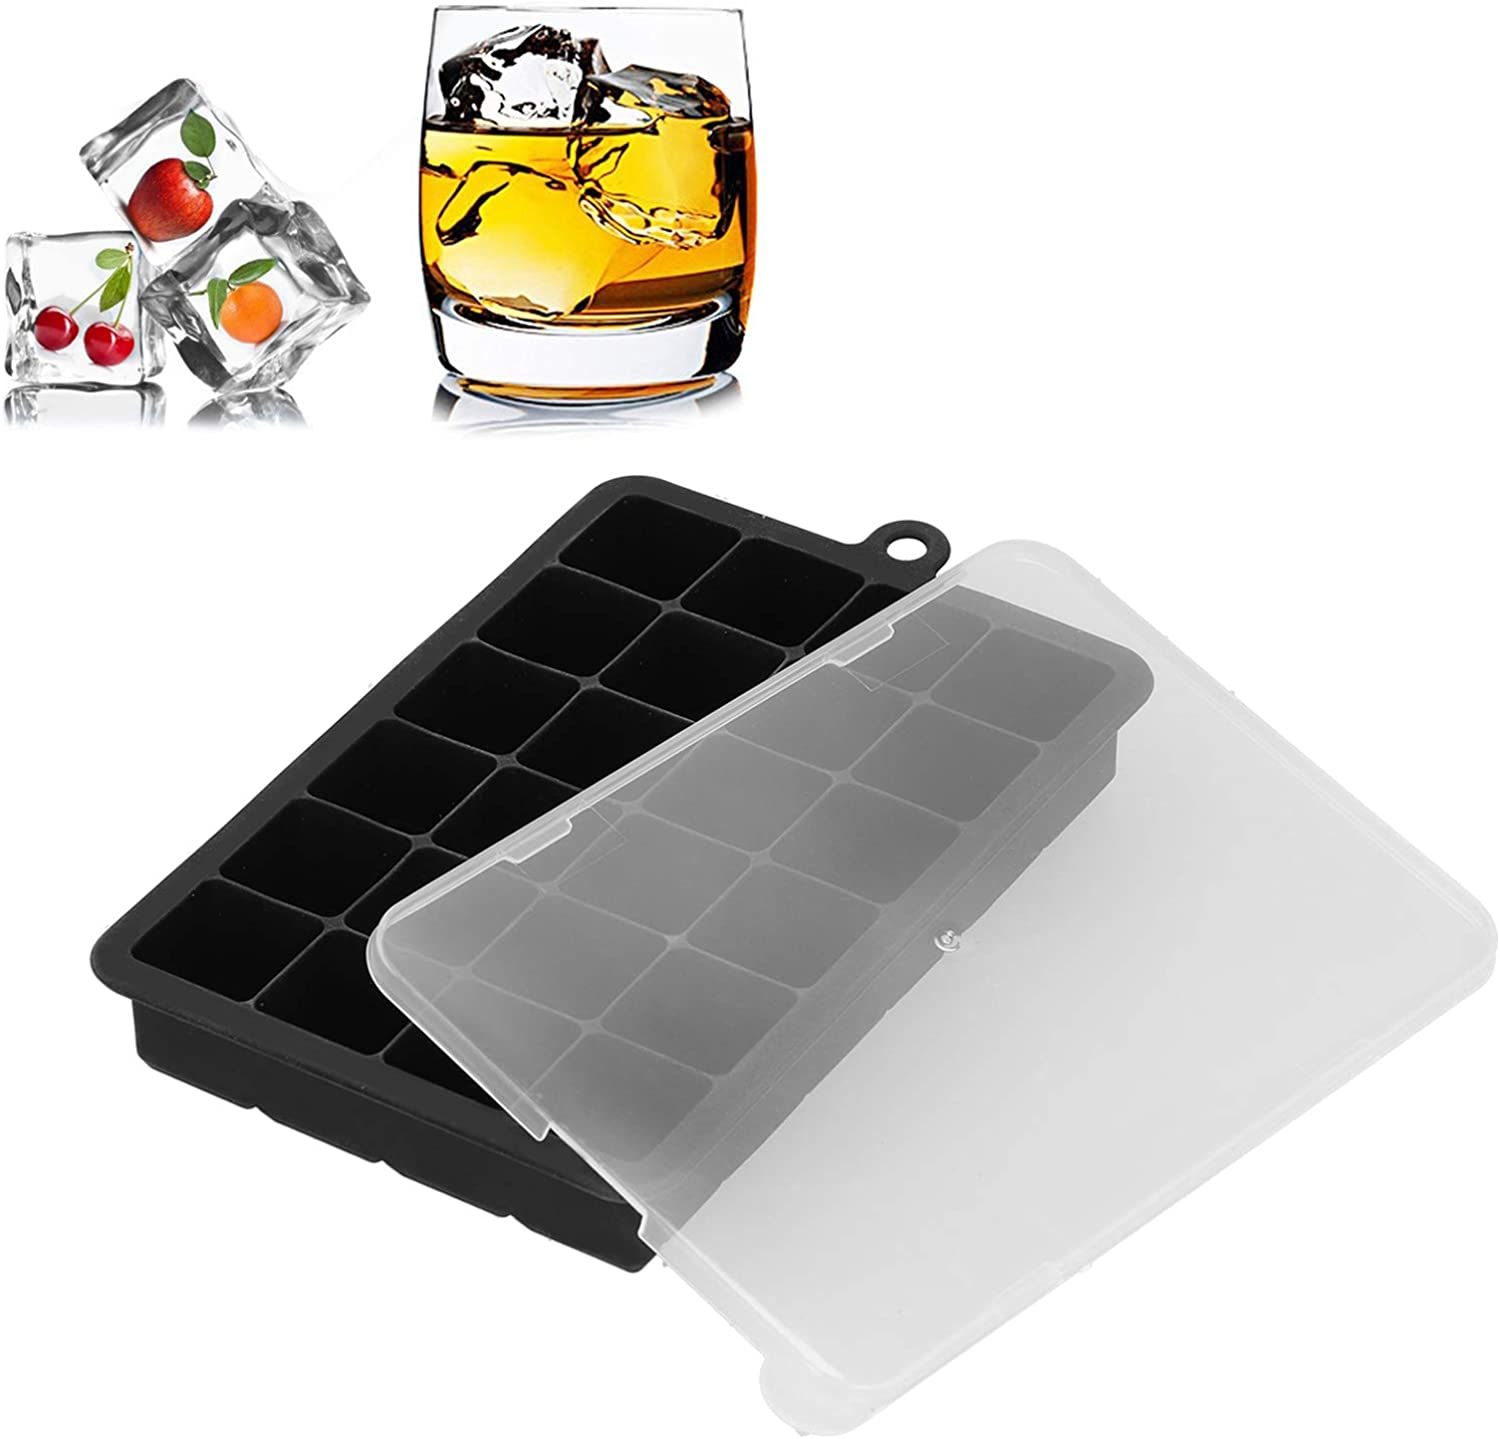 Quality inspection shipfree Ice Cubes Box Maker Silicone Mold Tray